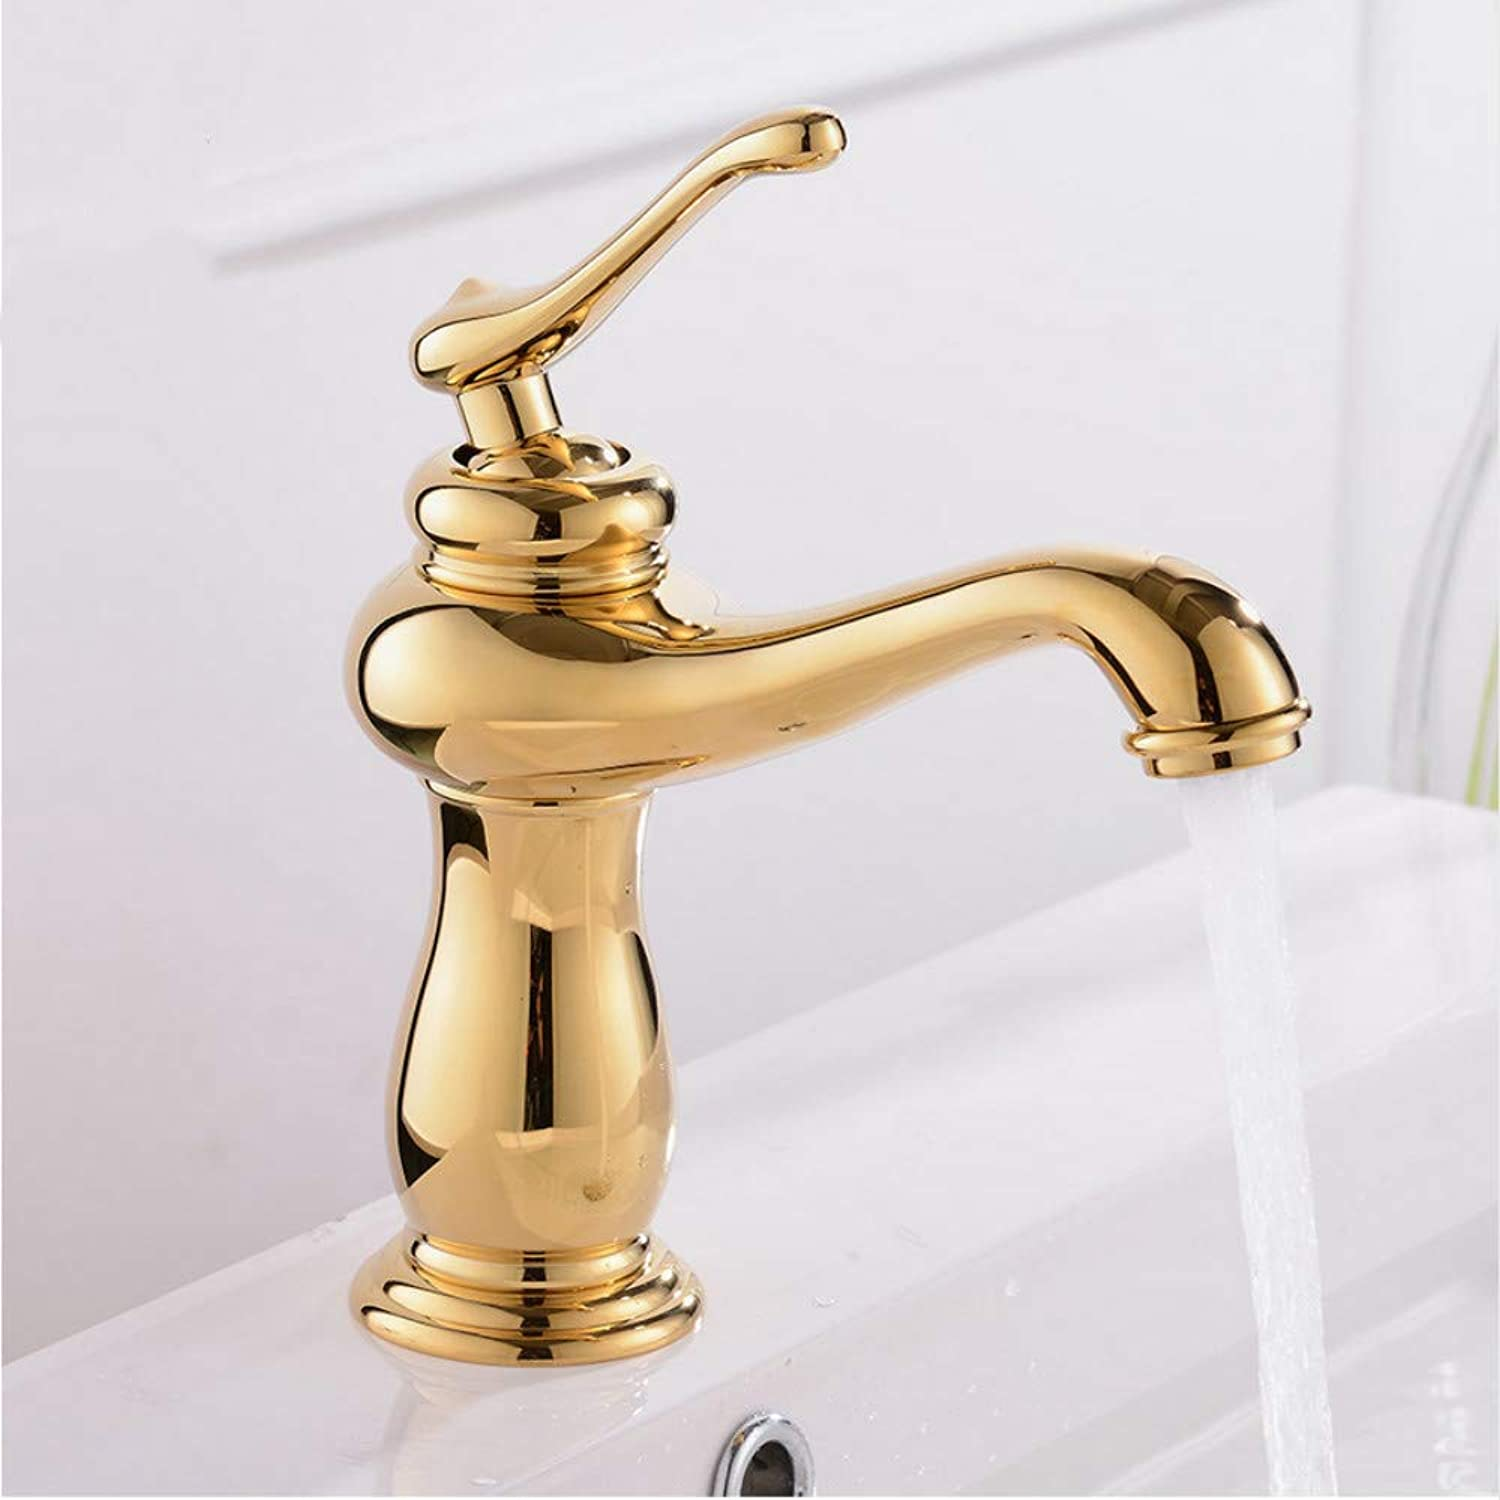 LLLYZZ Hot Sale Good Quality Deck Mounted Single Handle gold Bathroom Basin Hot & Cold Mixer Tap Basin Faucet